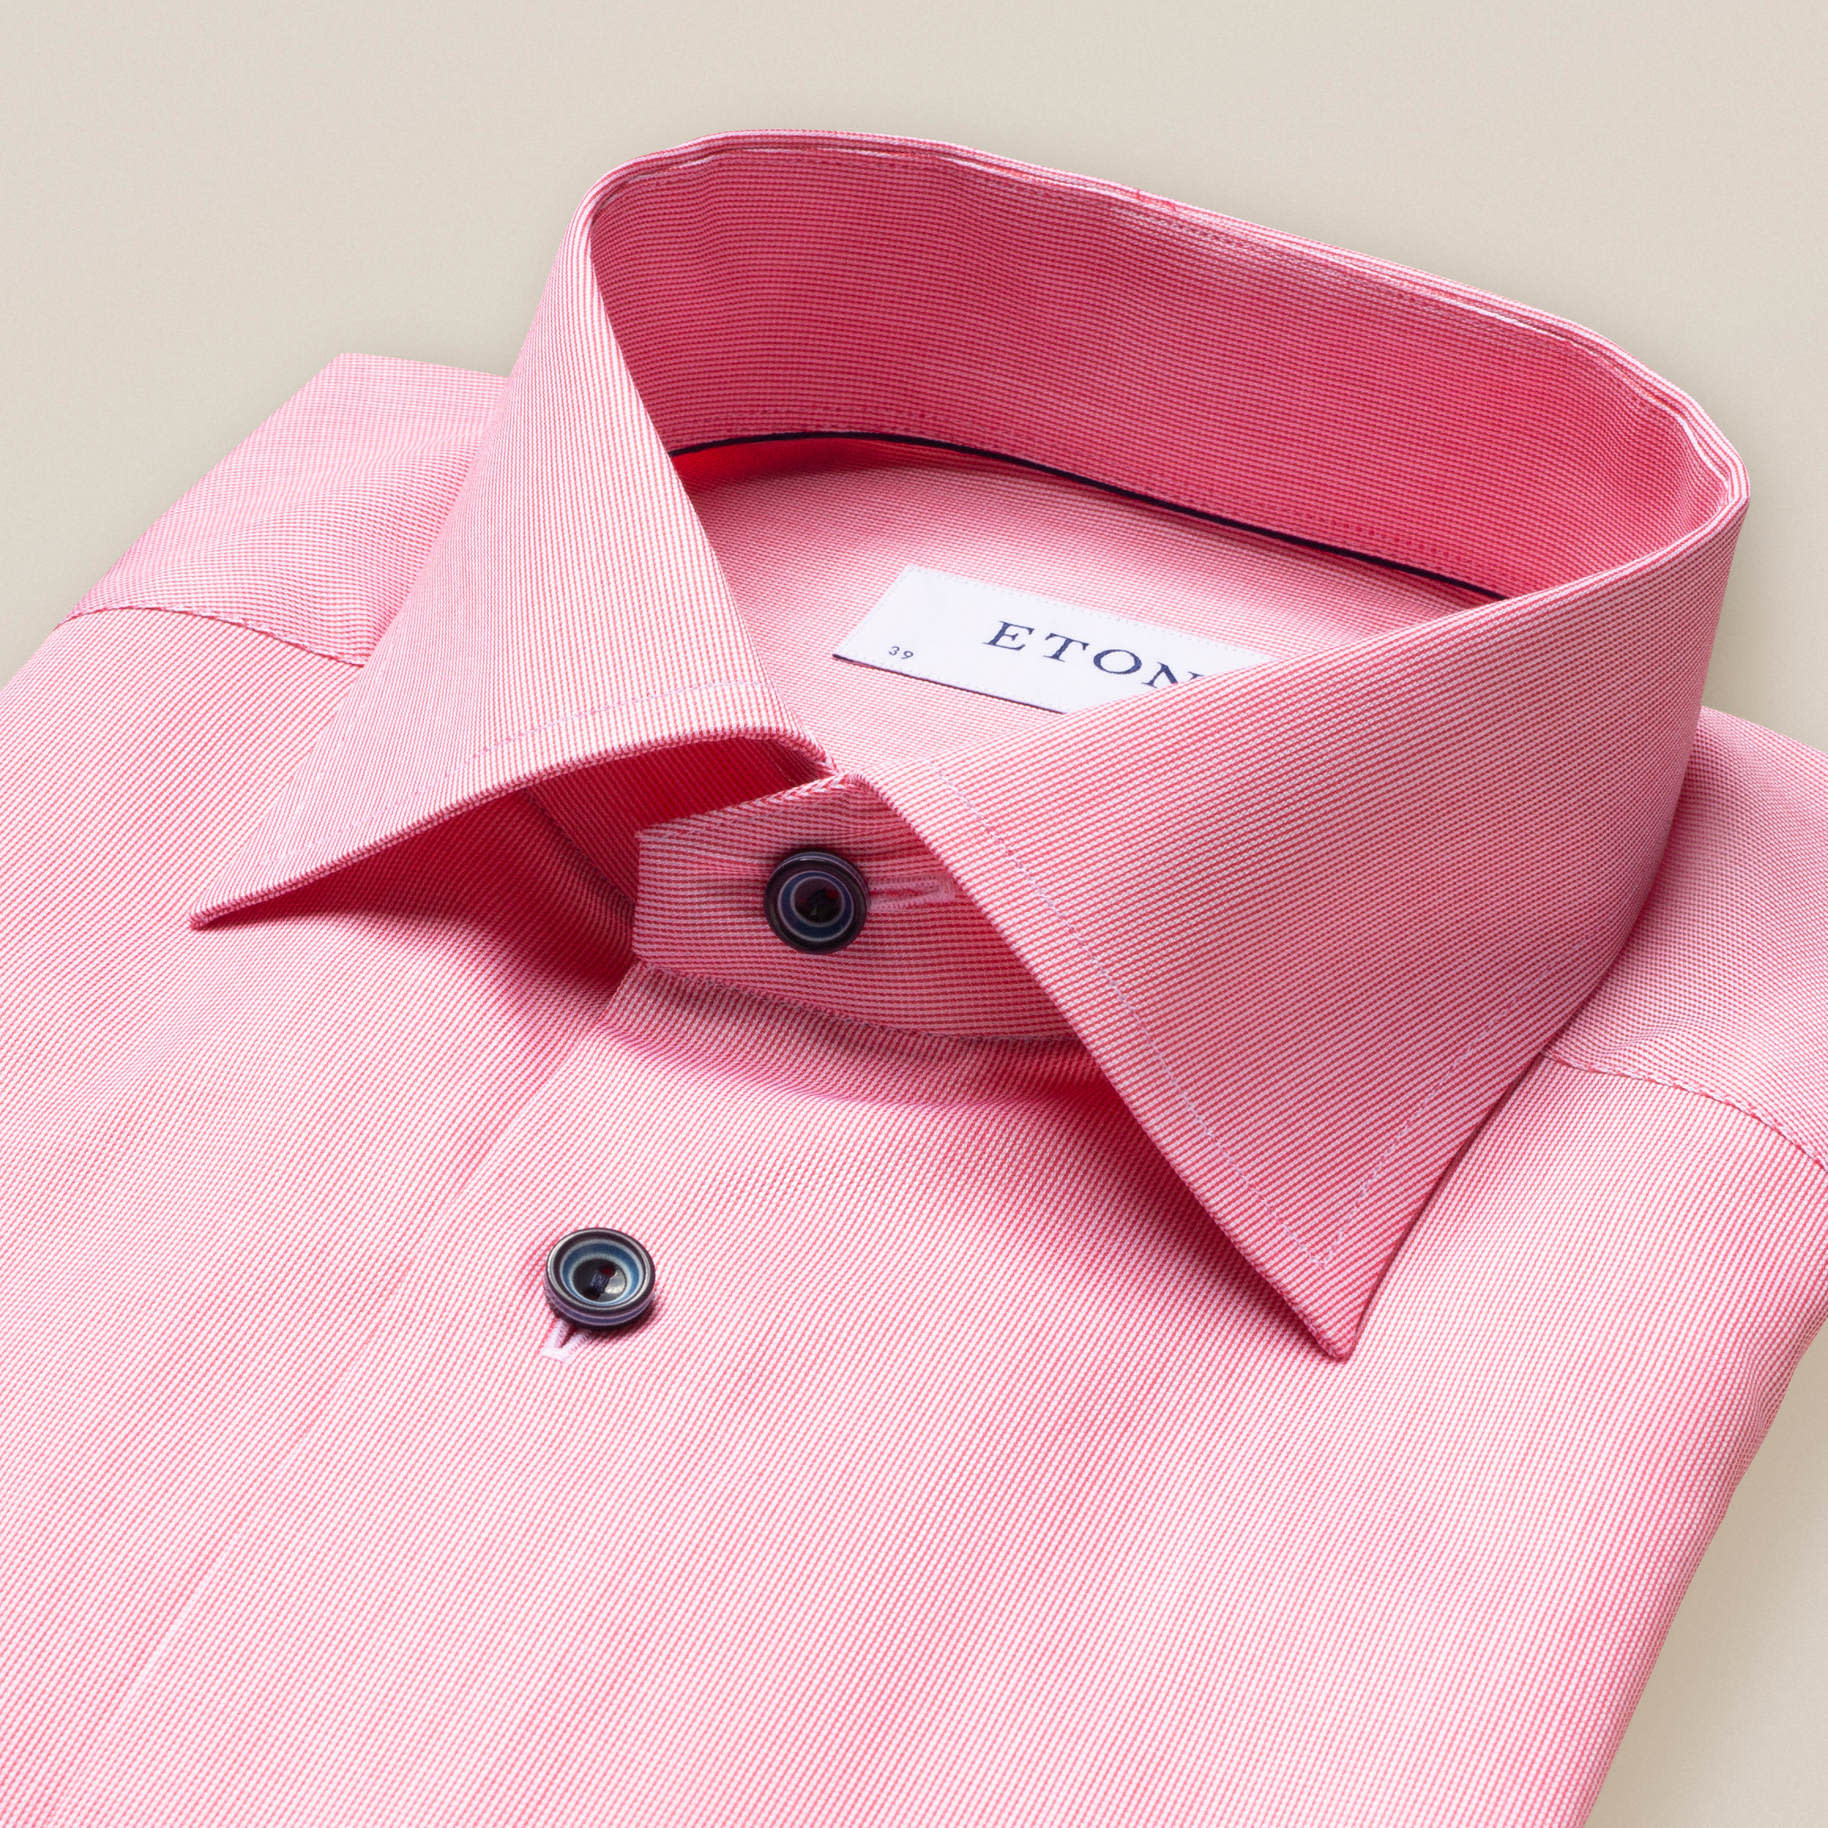 Eton Signature twill with Contrast button